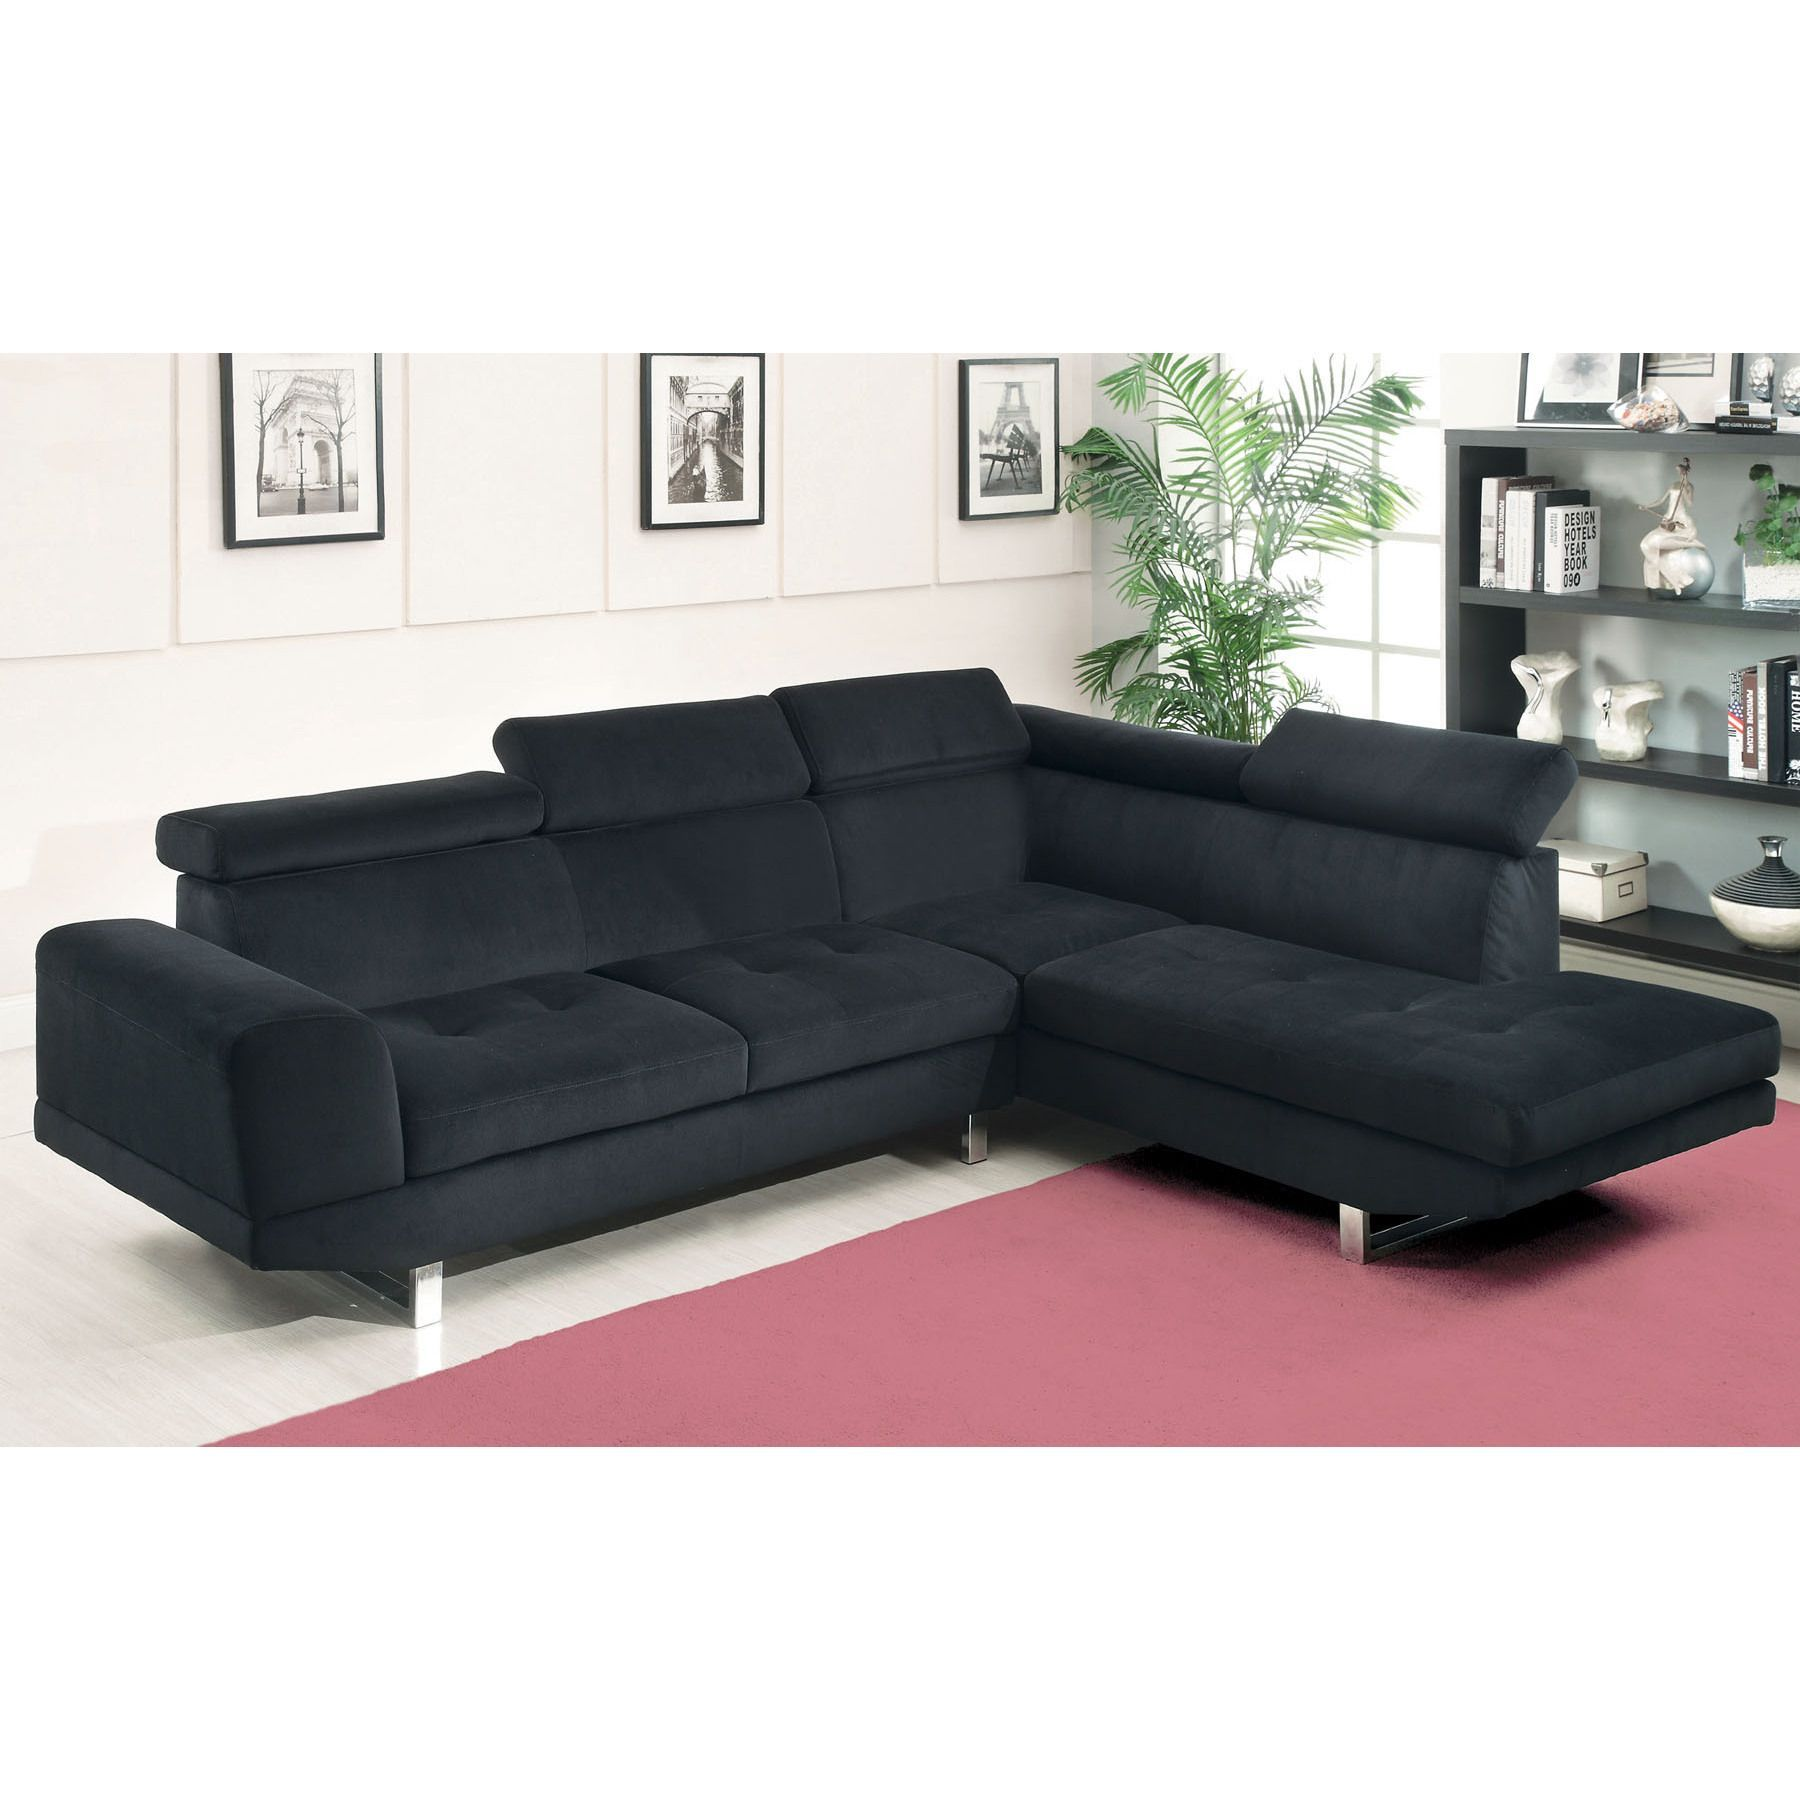 Sopron Contemporary Style Sectional Sofa in Black Bella Fabric